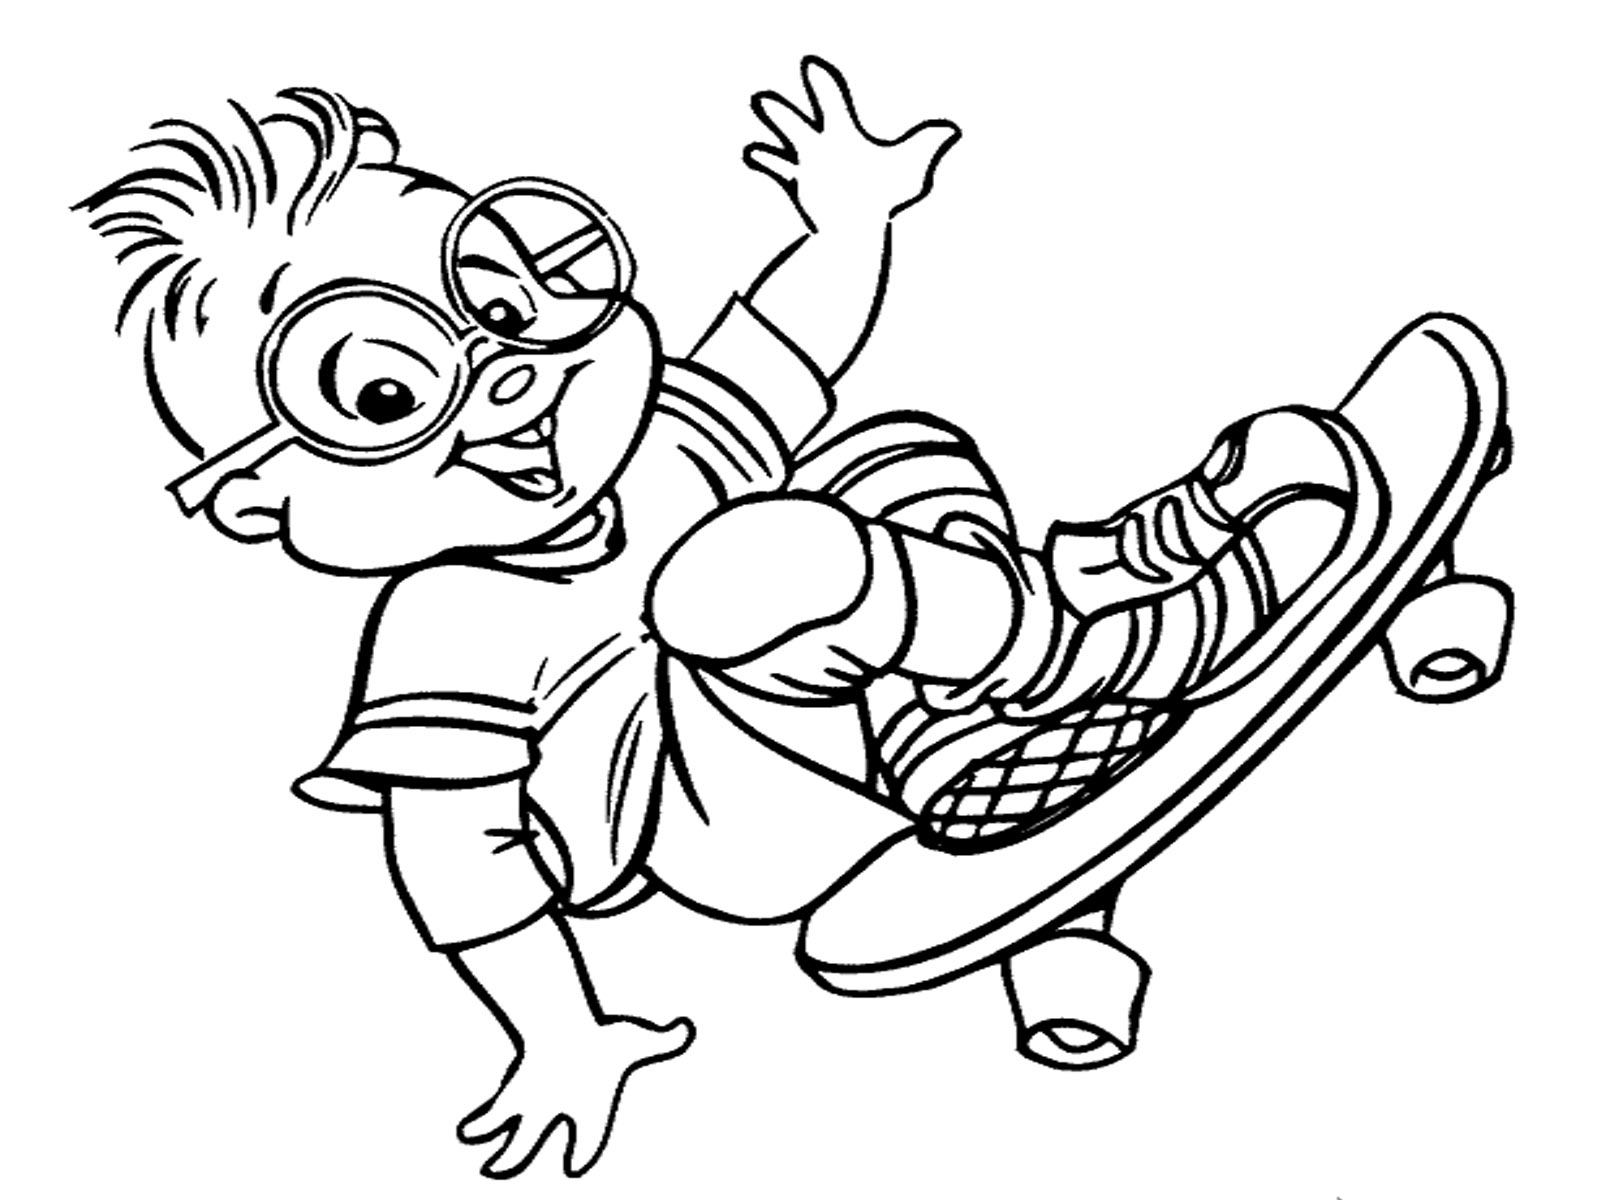 1600x1200 Interesting Skateboarding Coloring Pages Free Printables Tony